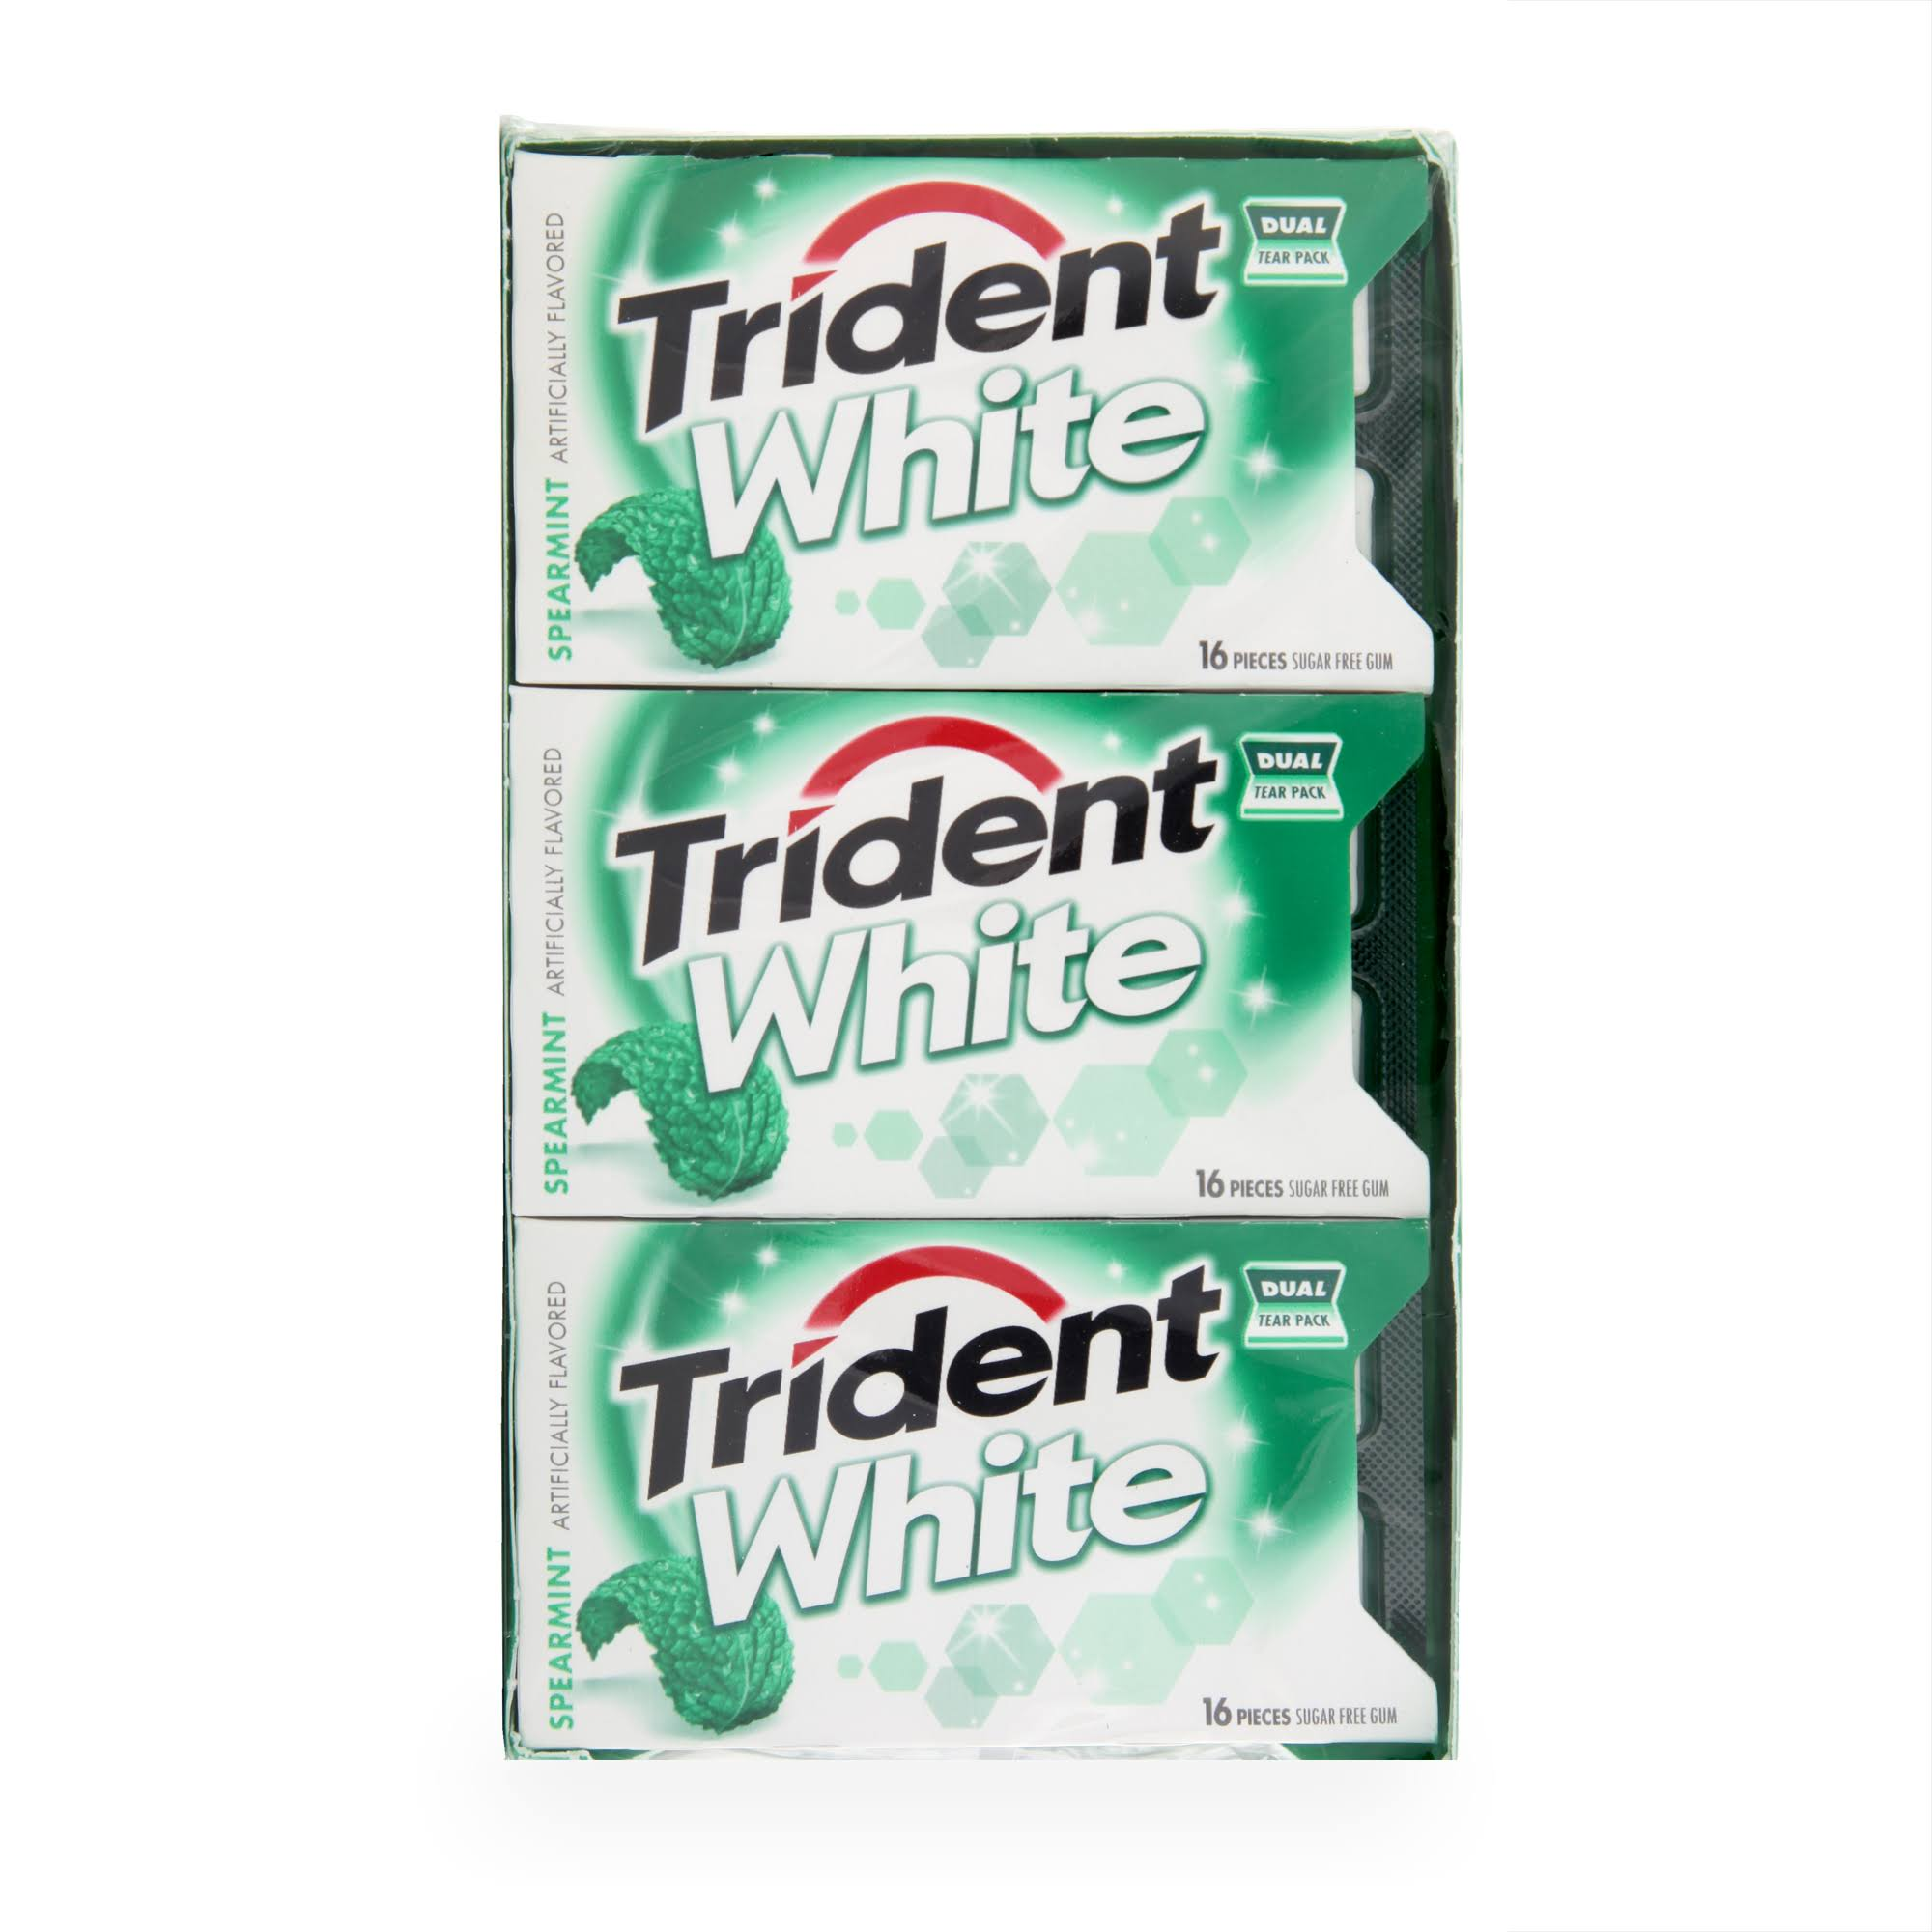 Trident White Spearmint Sugar Free Gum - 16pcs, 9pk